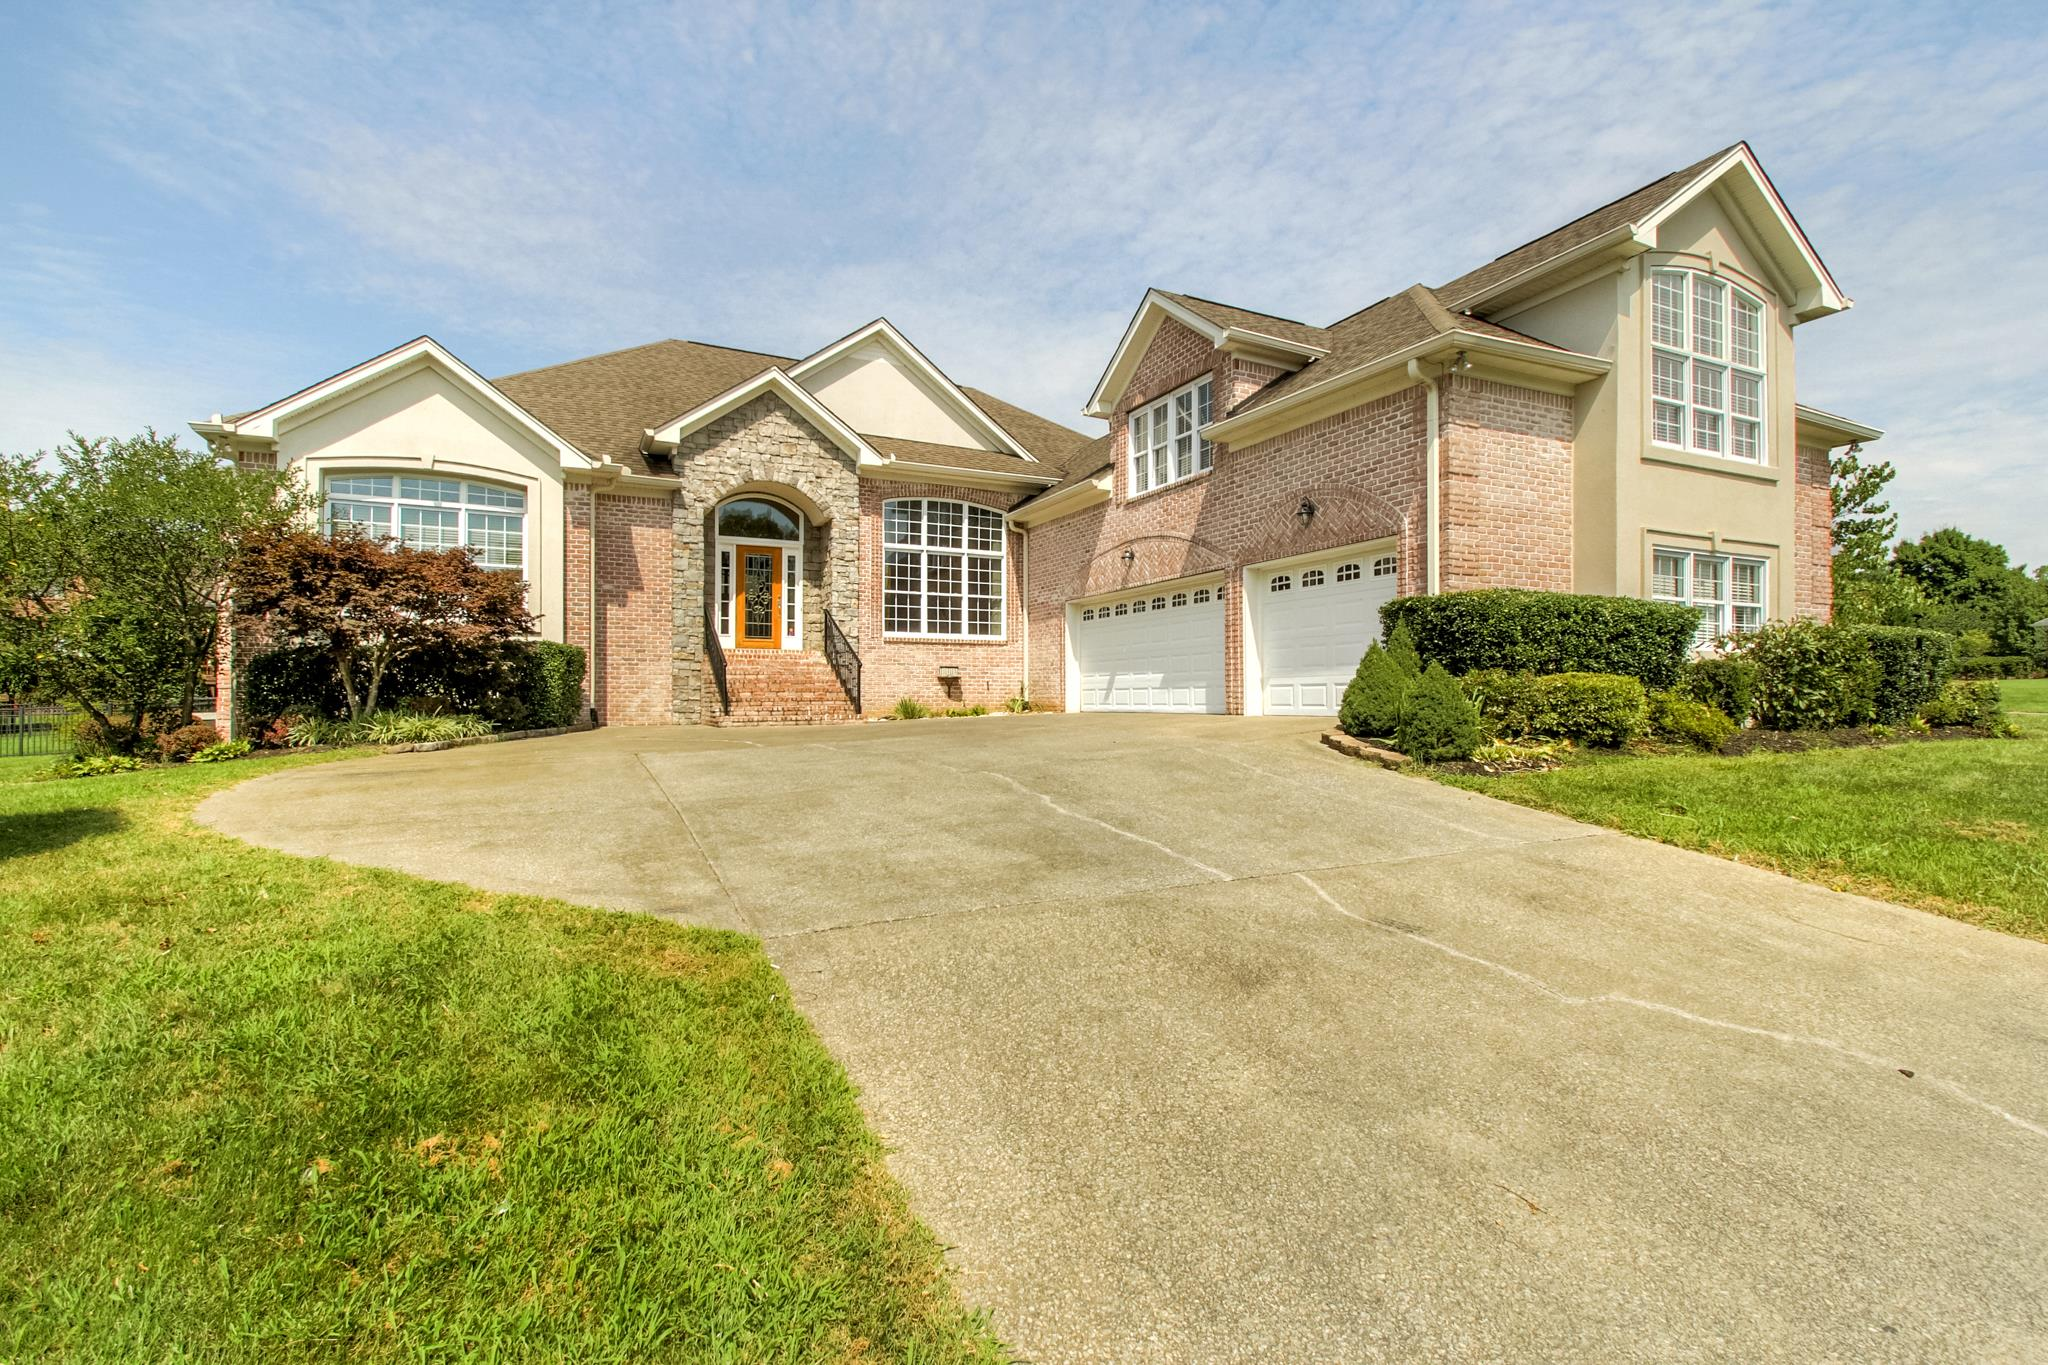 1453 Station Four Ln, Old Hickory, TN 37138